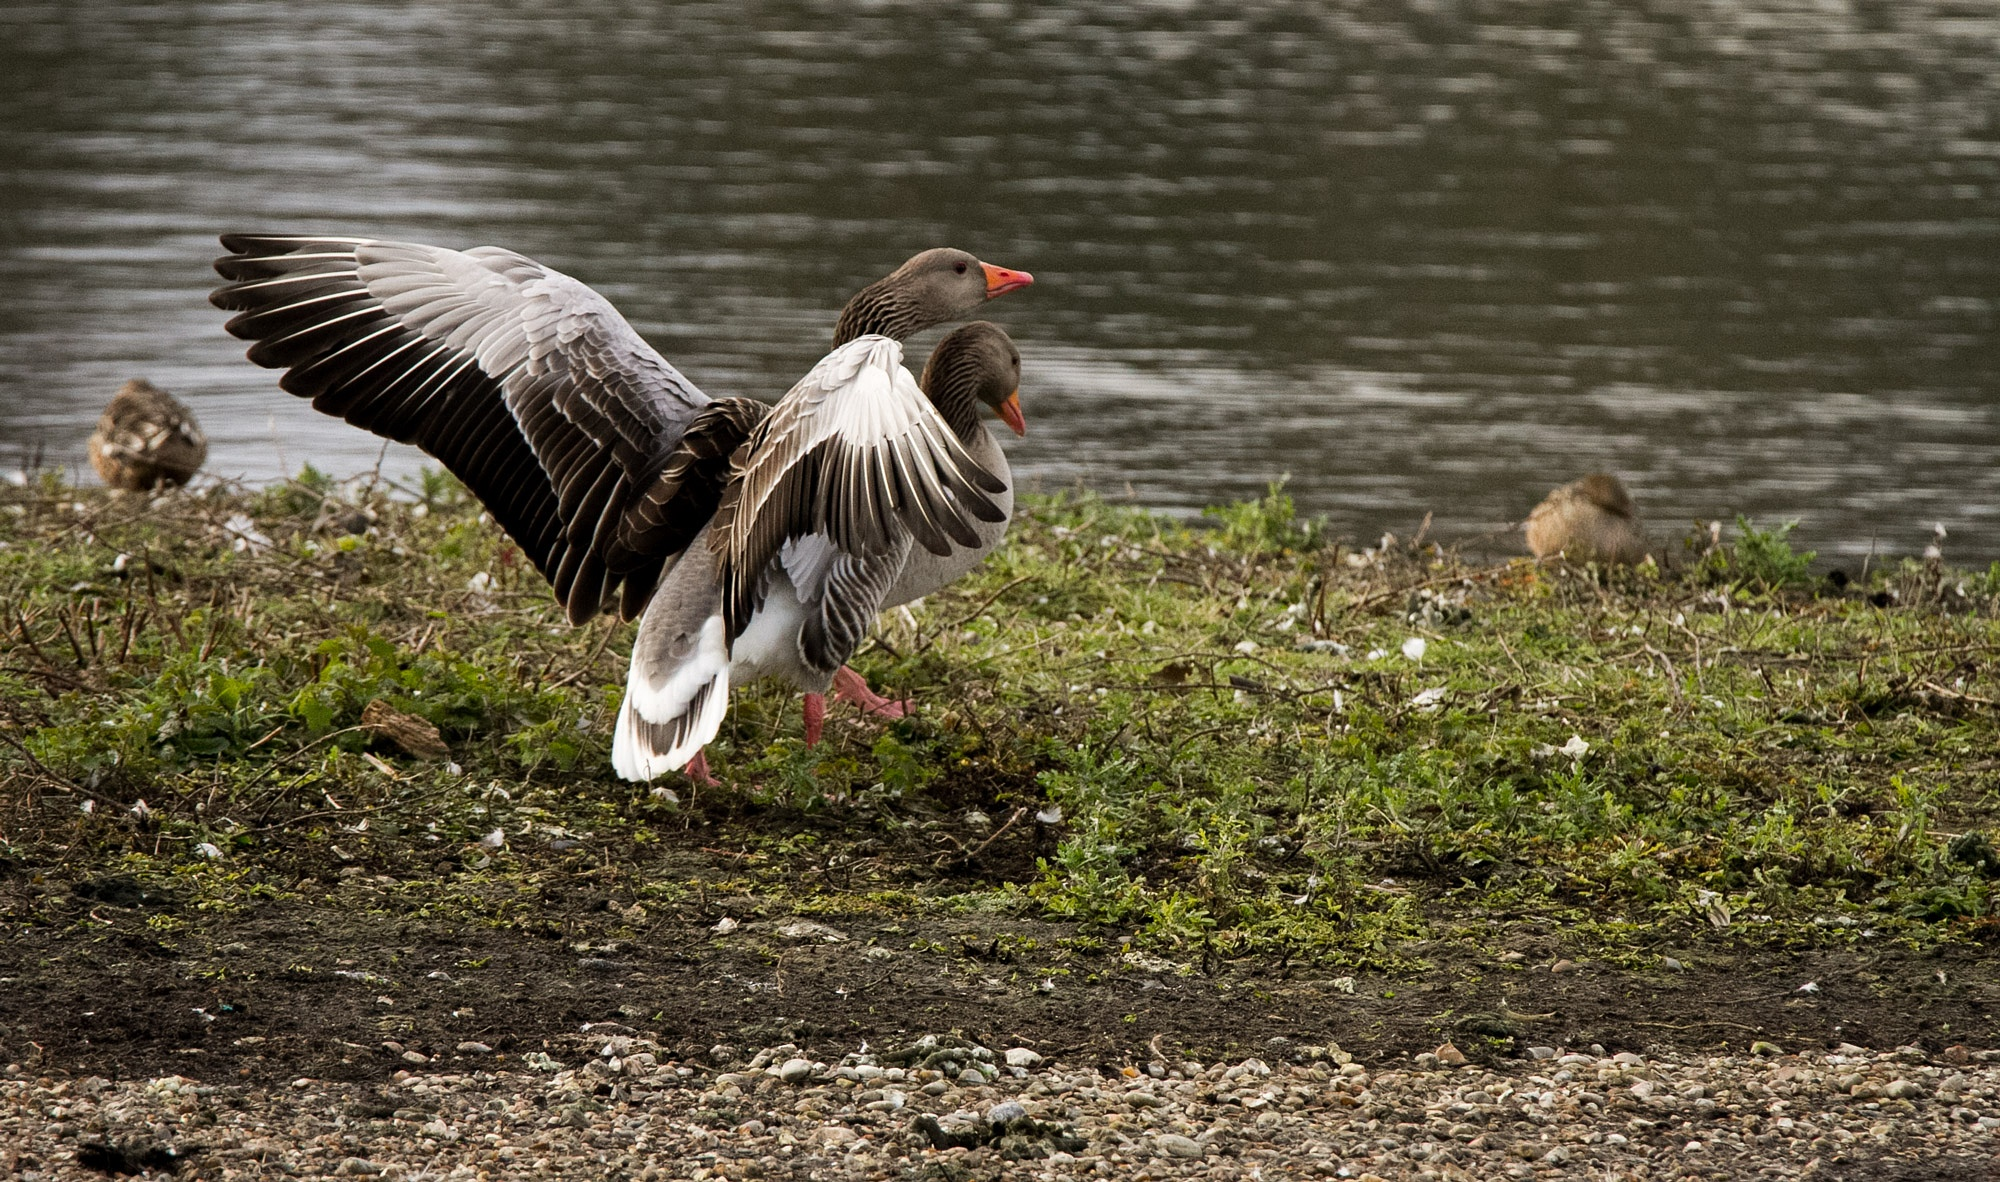 Greylag Geese Amwell Nature Reserve by Karen